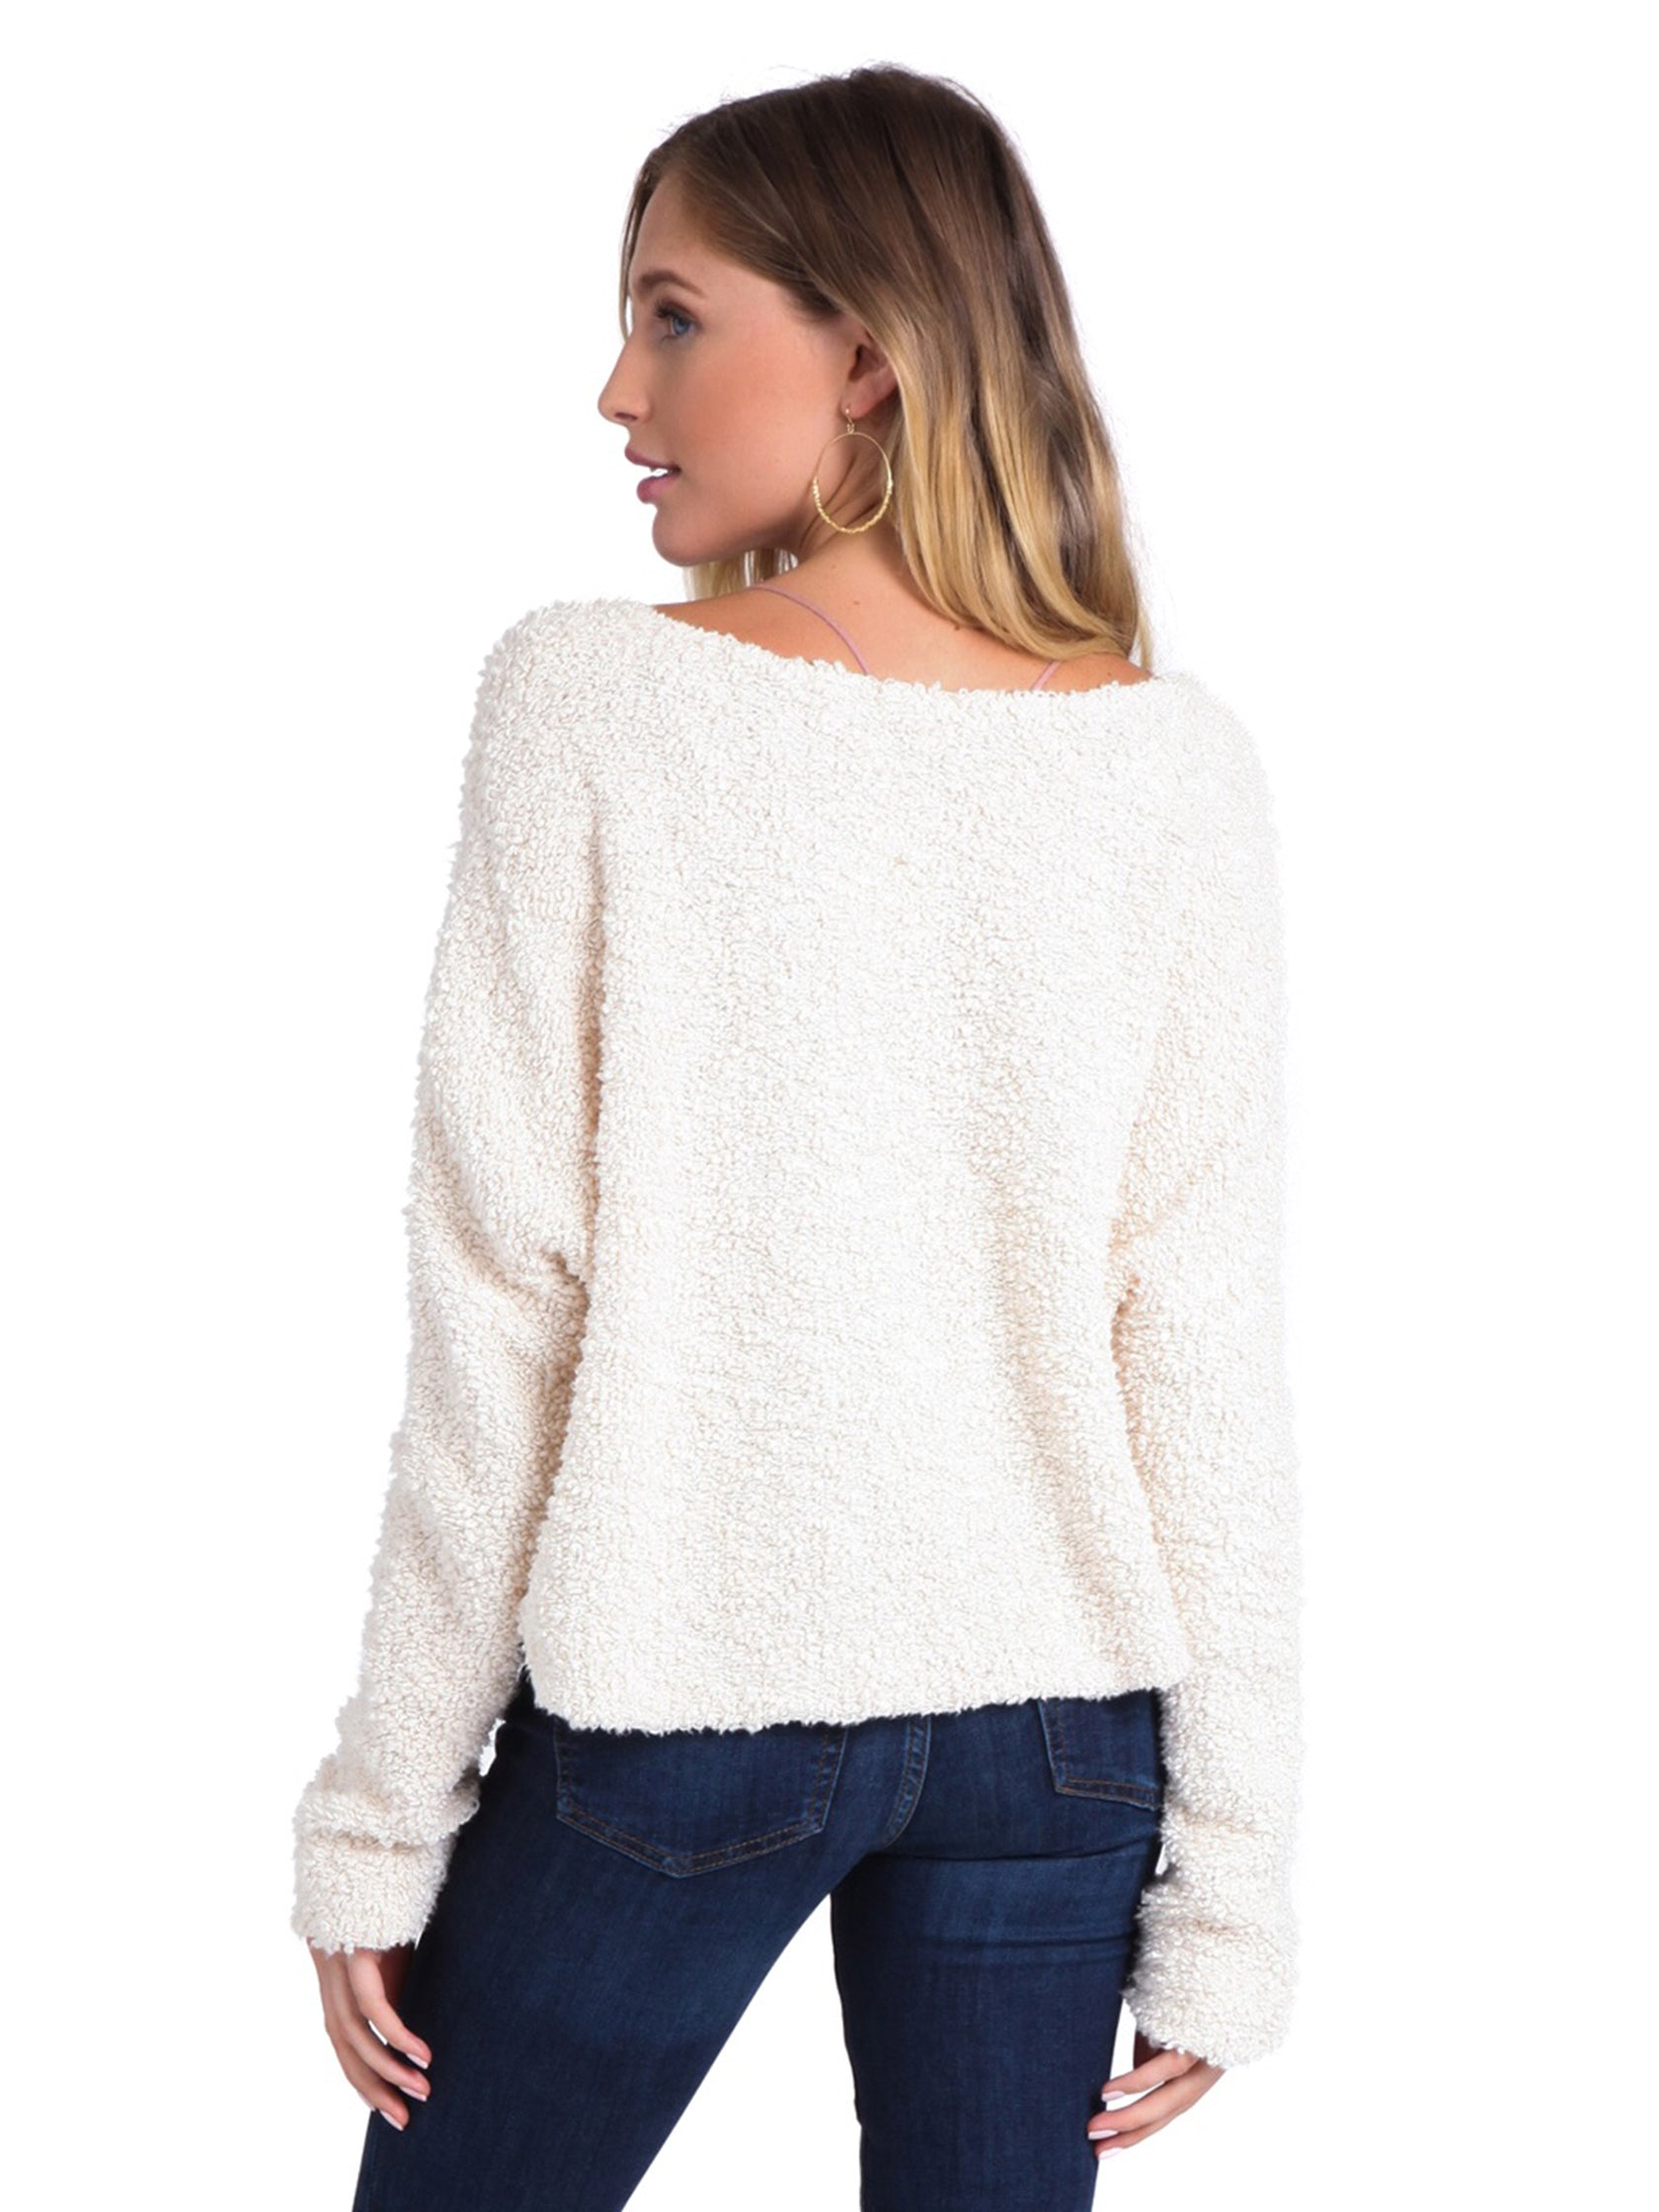 Women outfit in a sweater rental from Free People called Popcorn Pullover